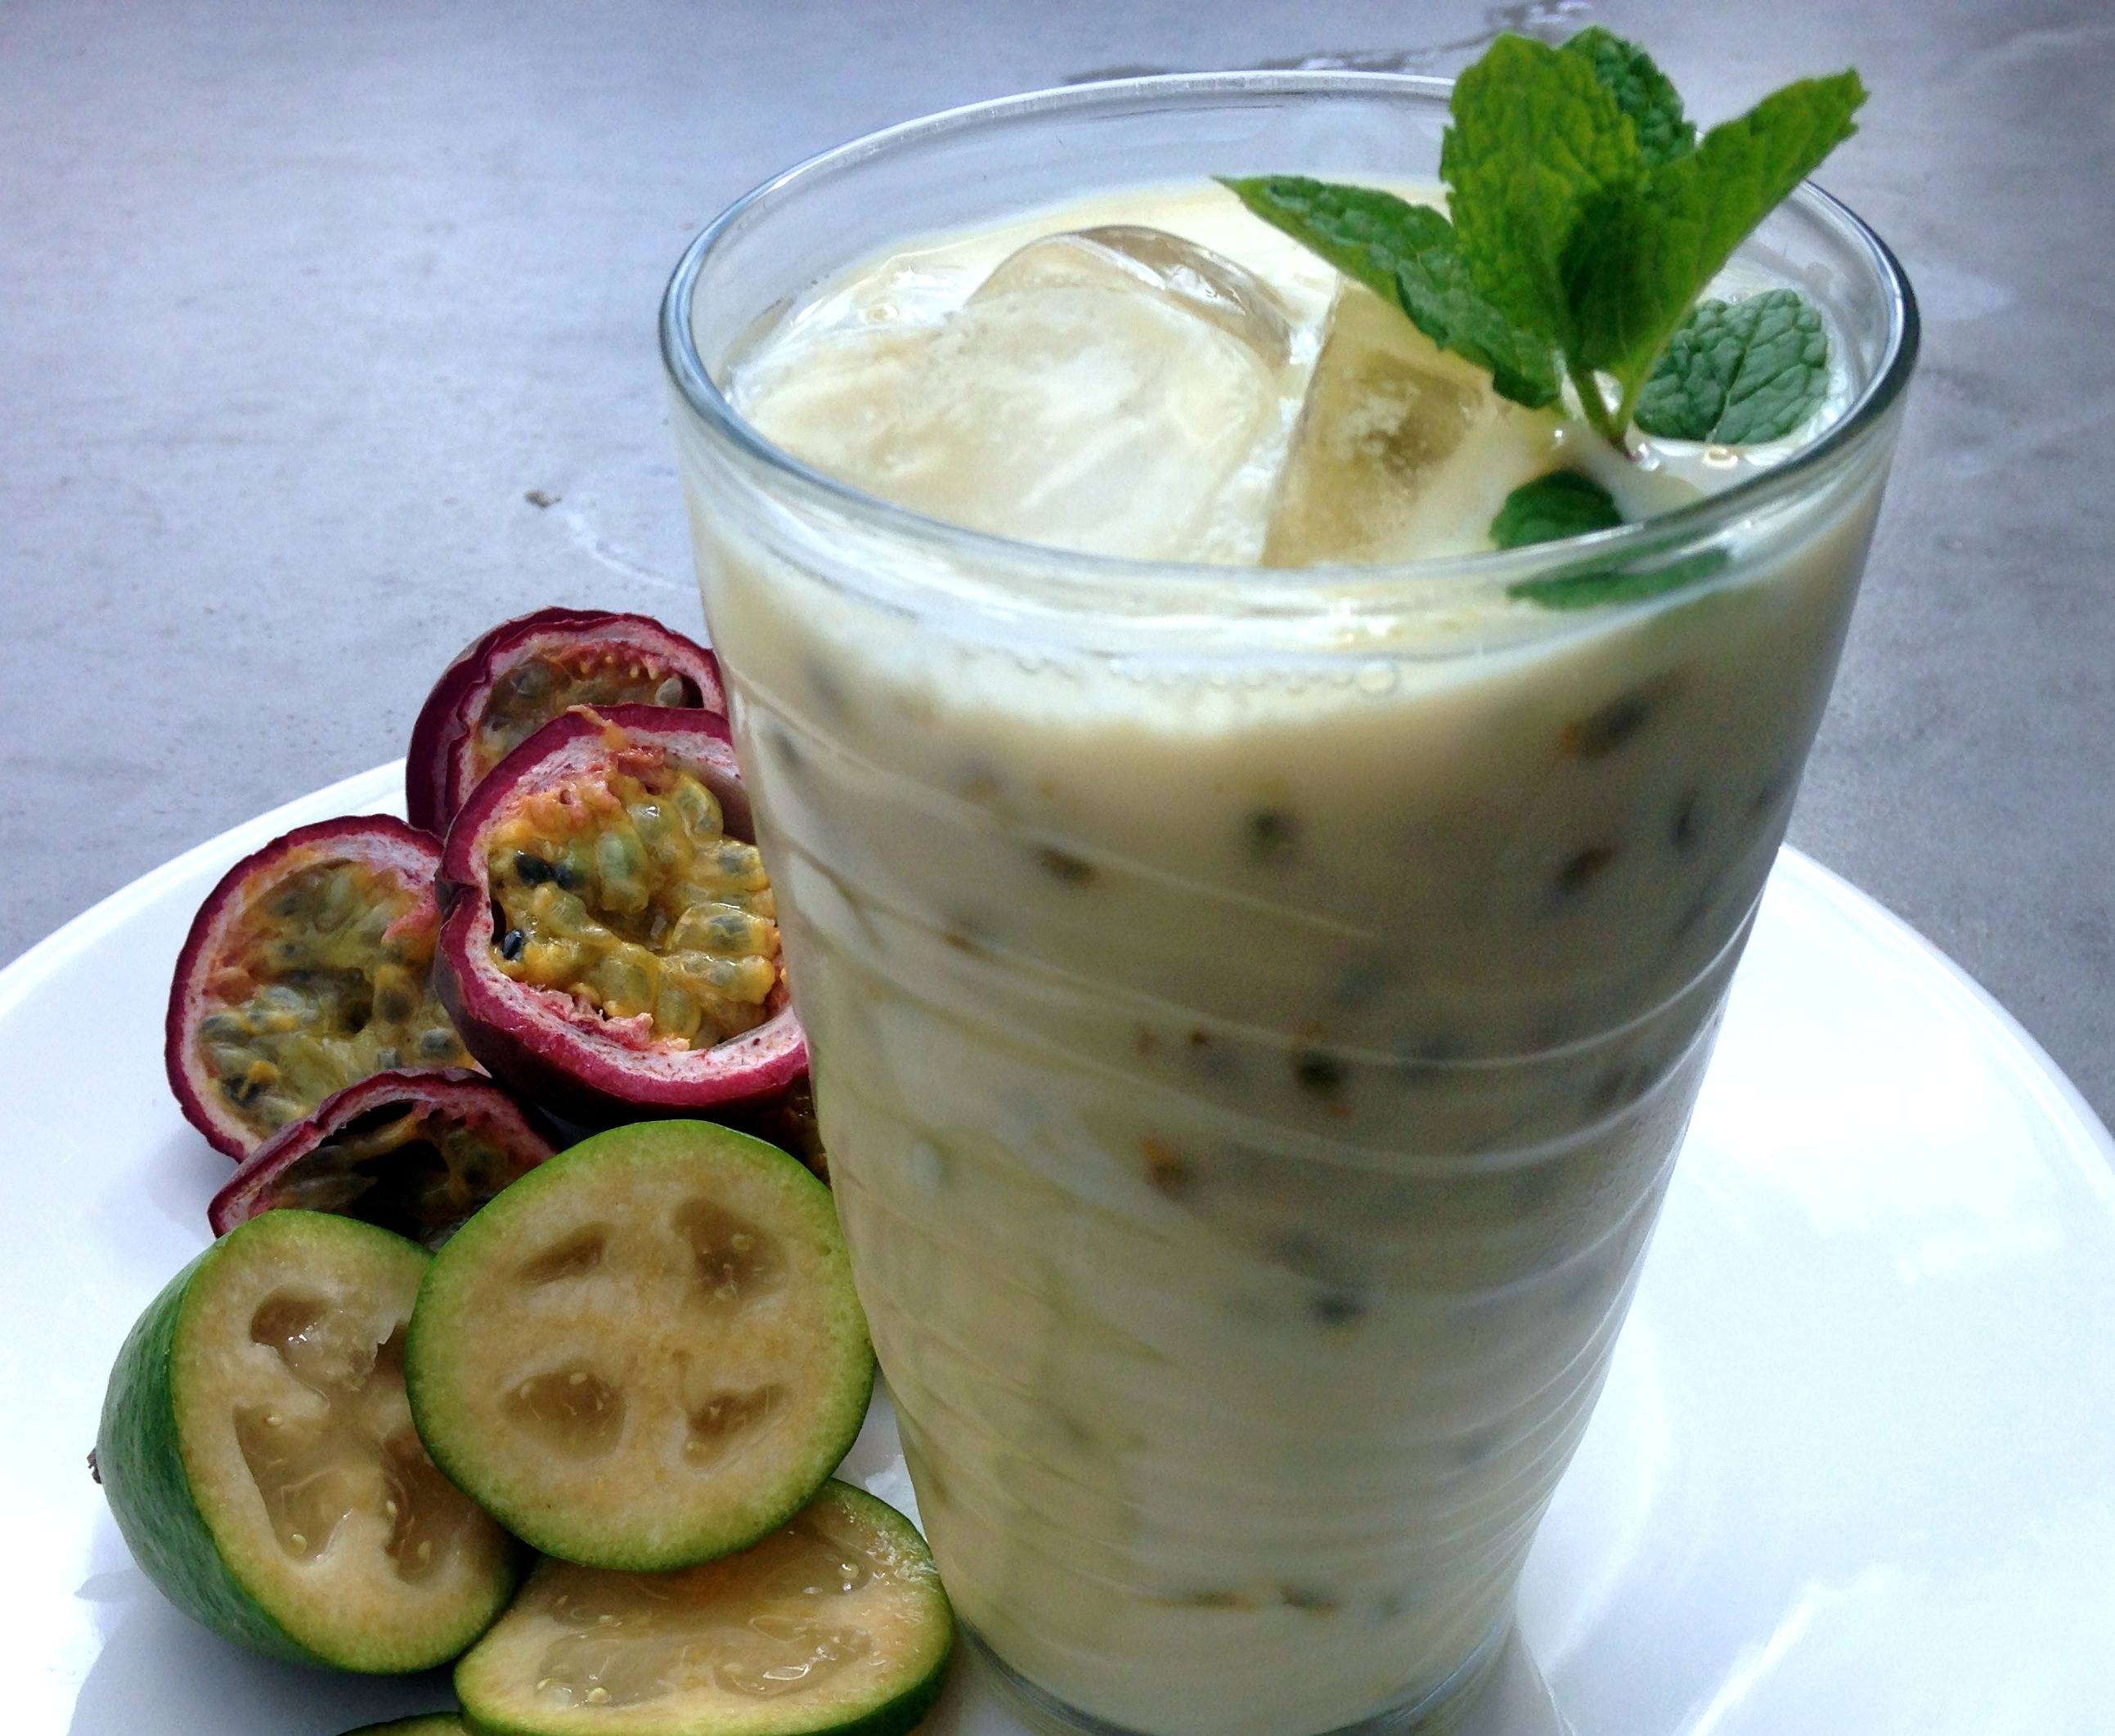 Feijoa and Passionfruit Smoothie Will Smith Dinner